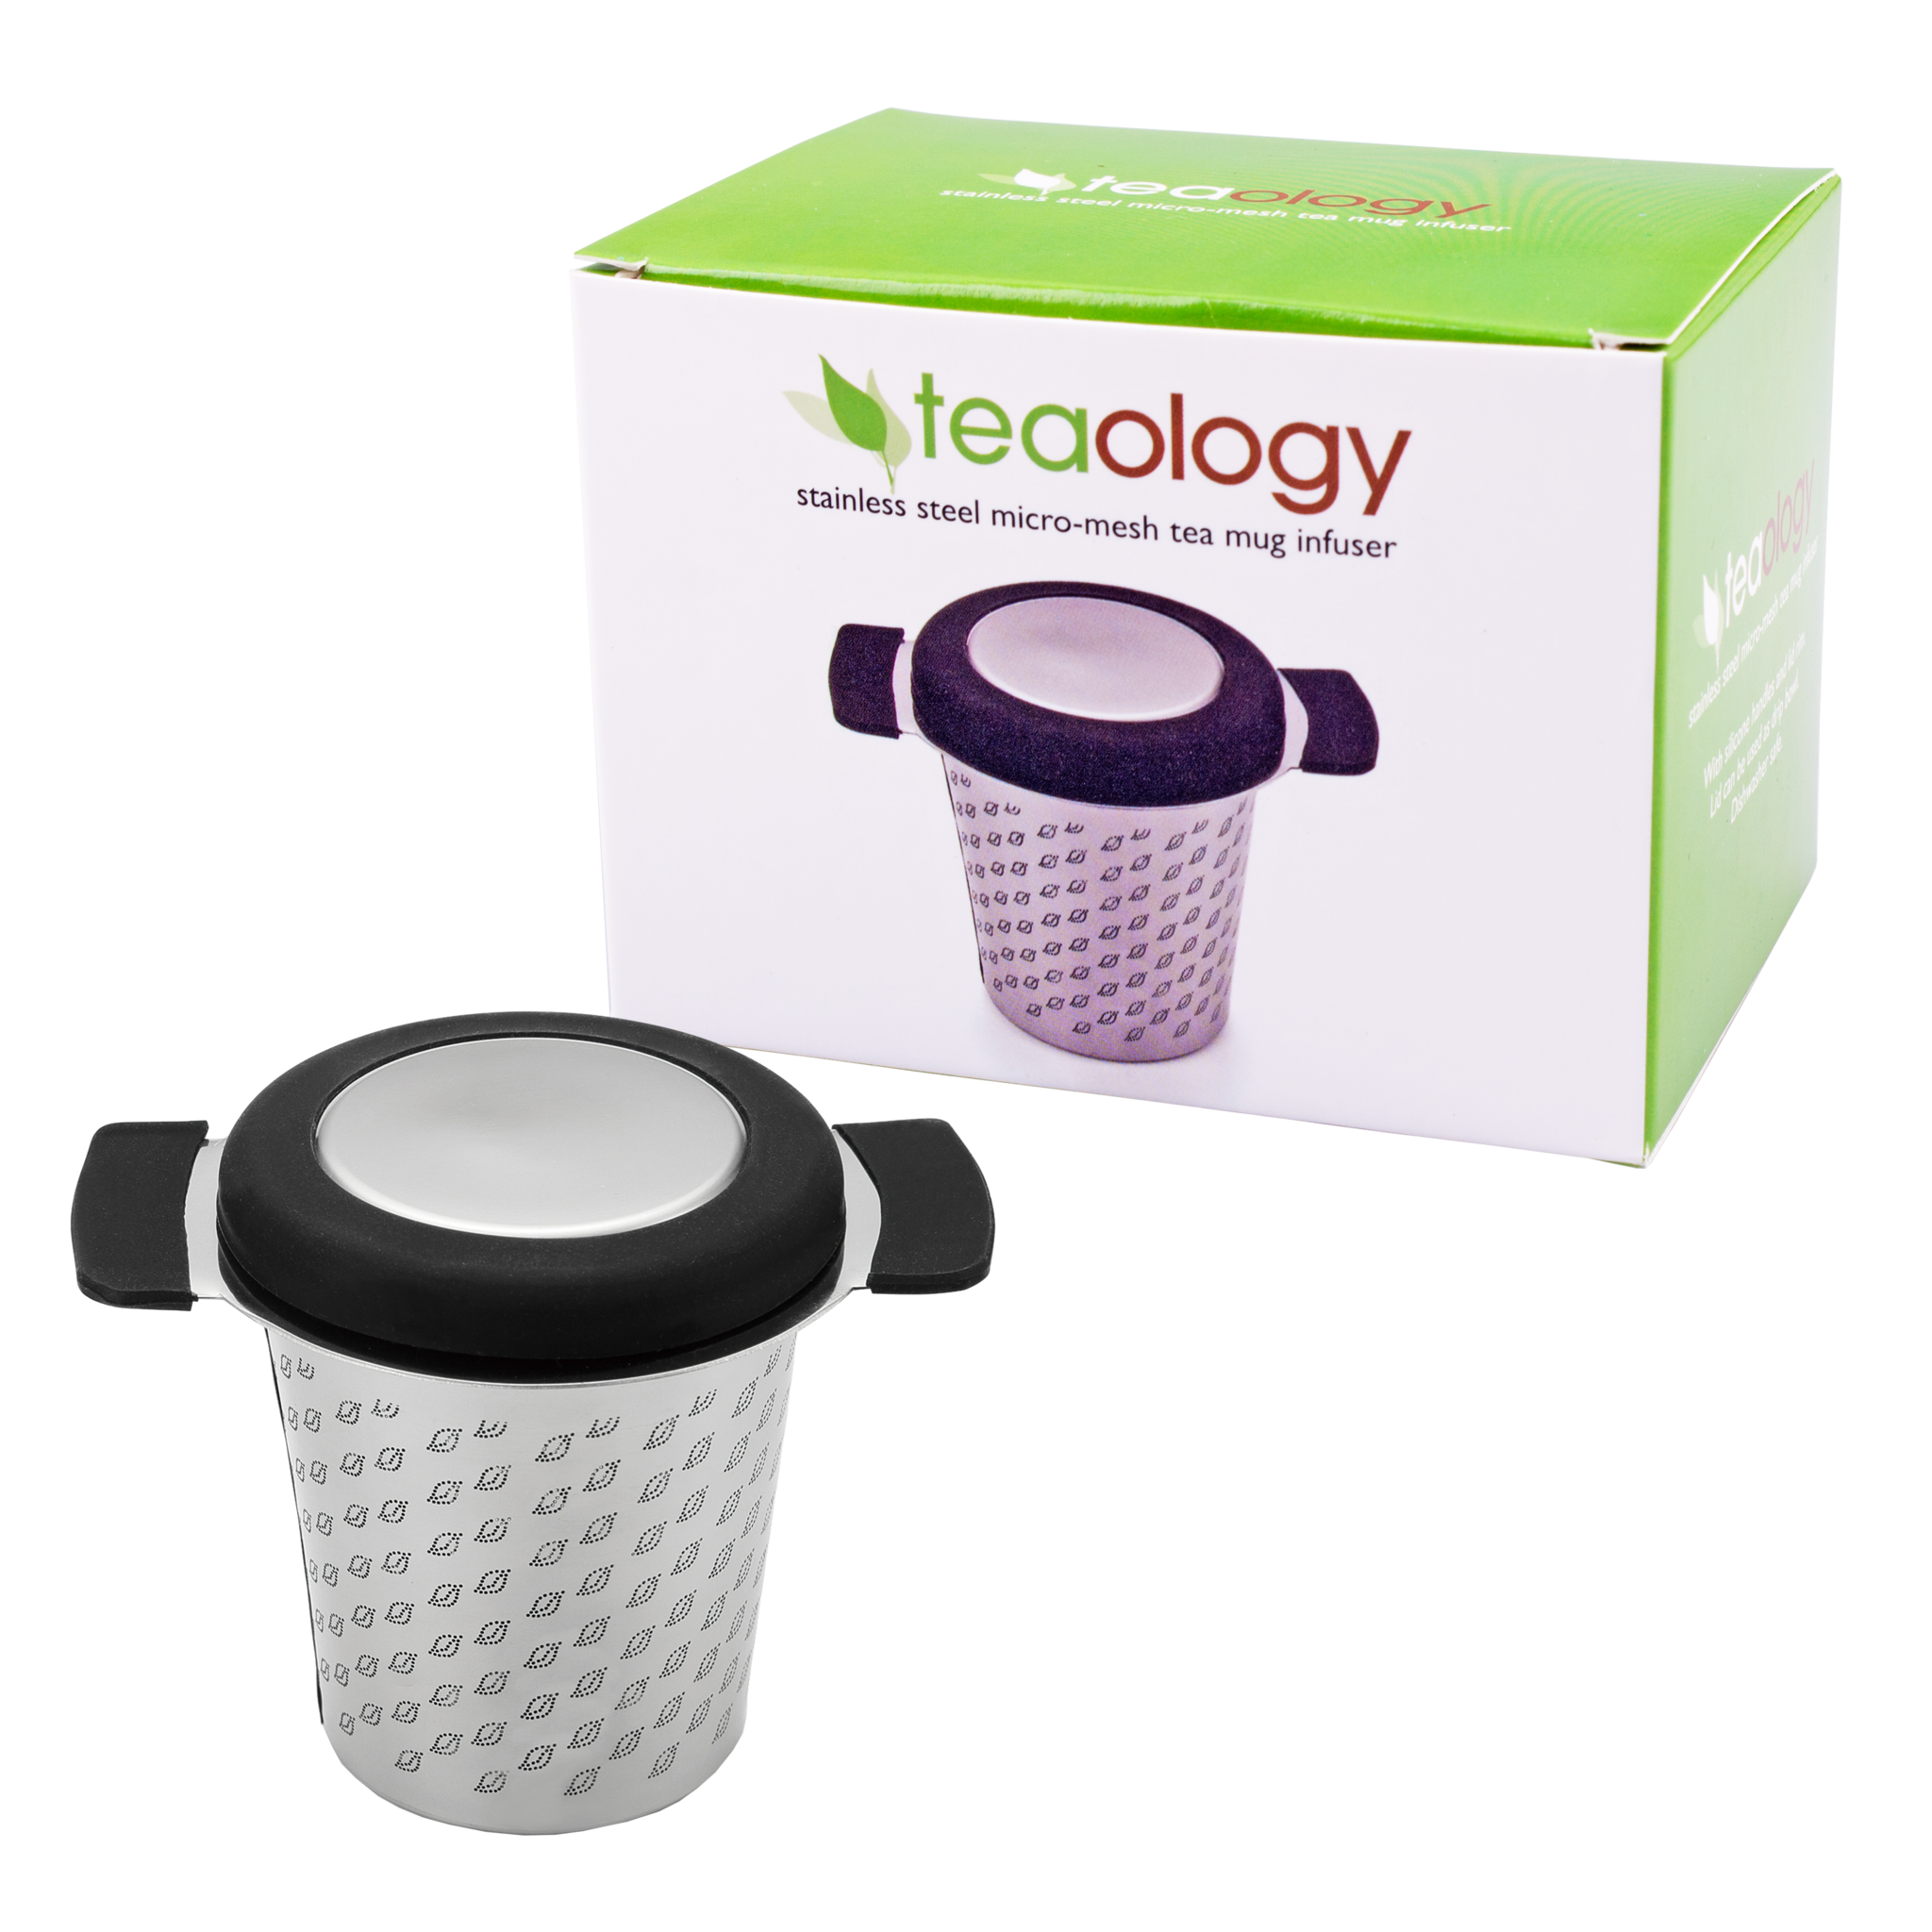 Teaology Micro-mesh Infuser